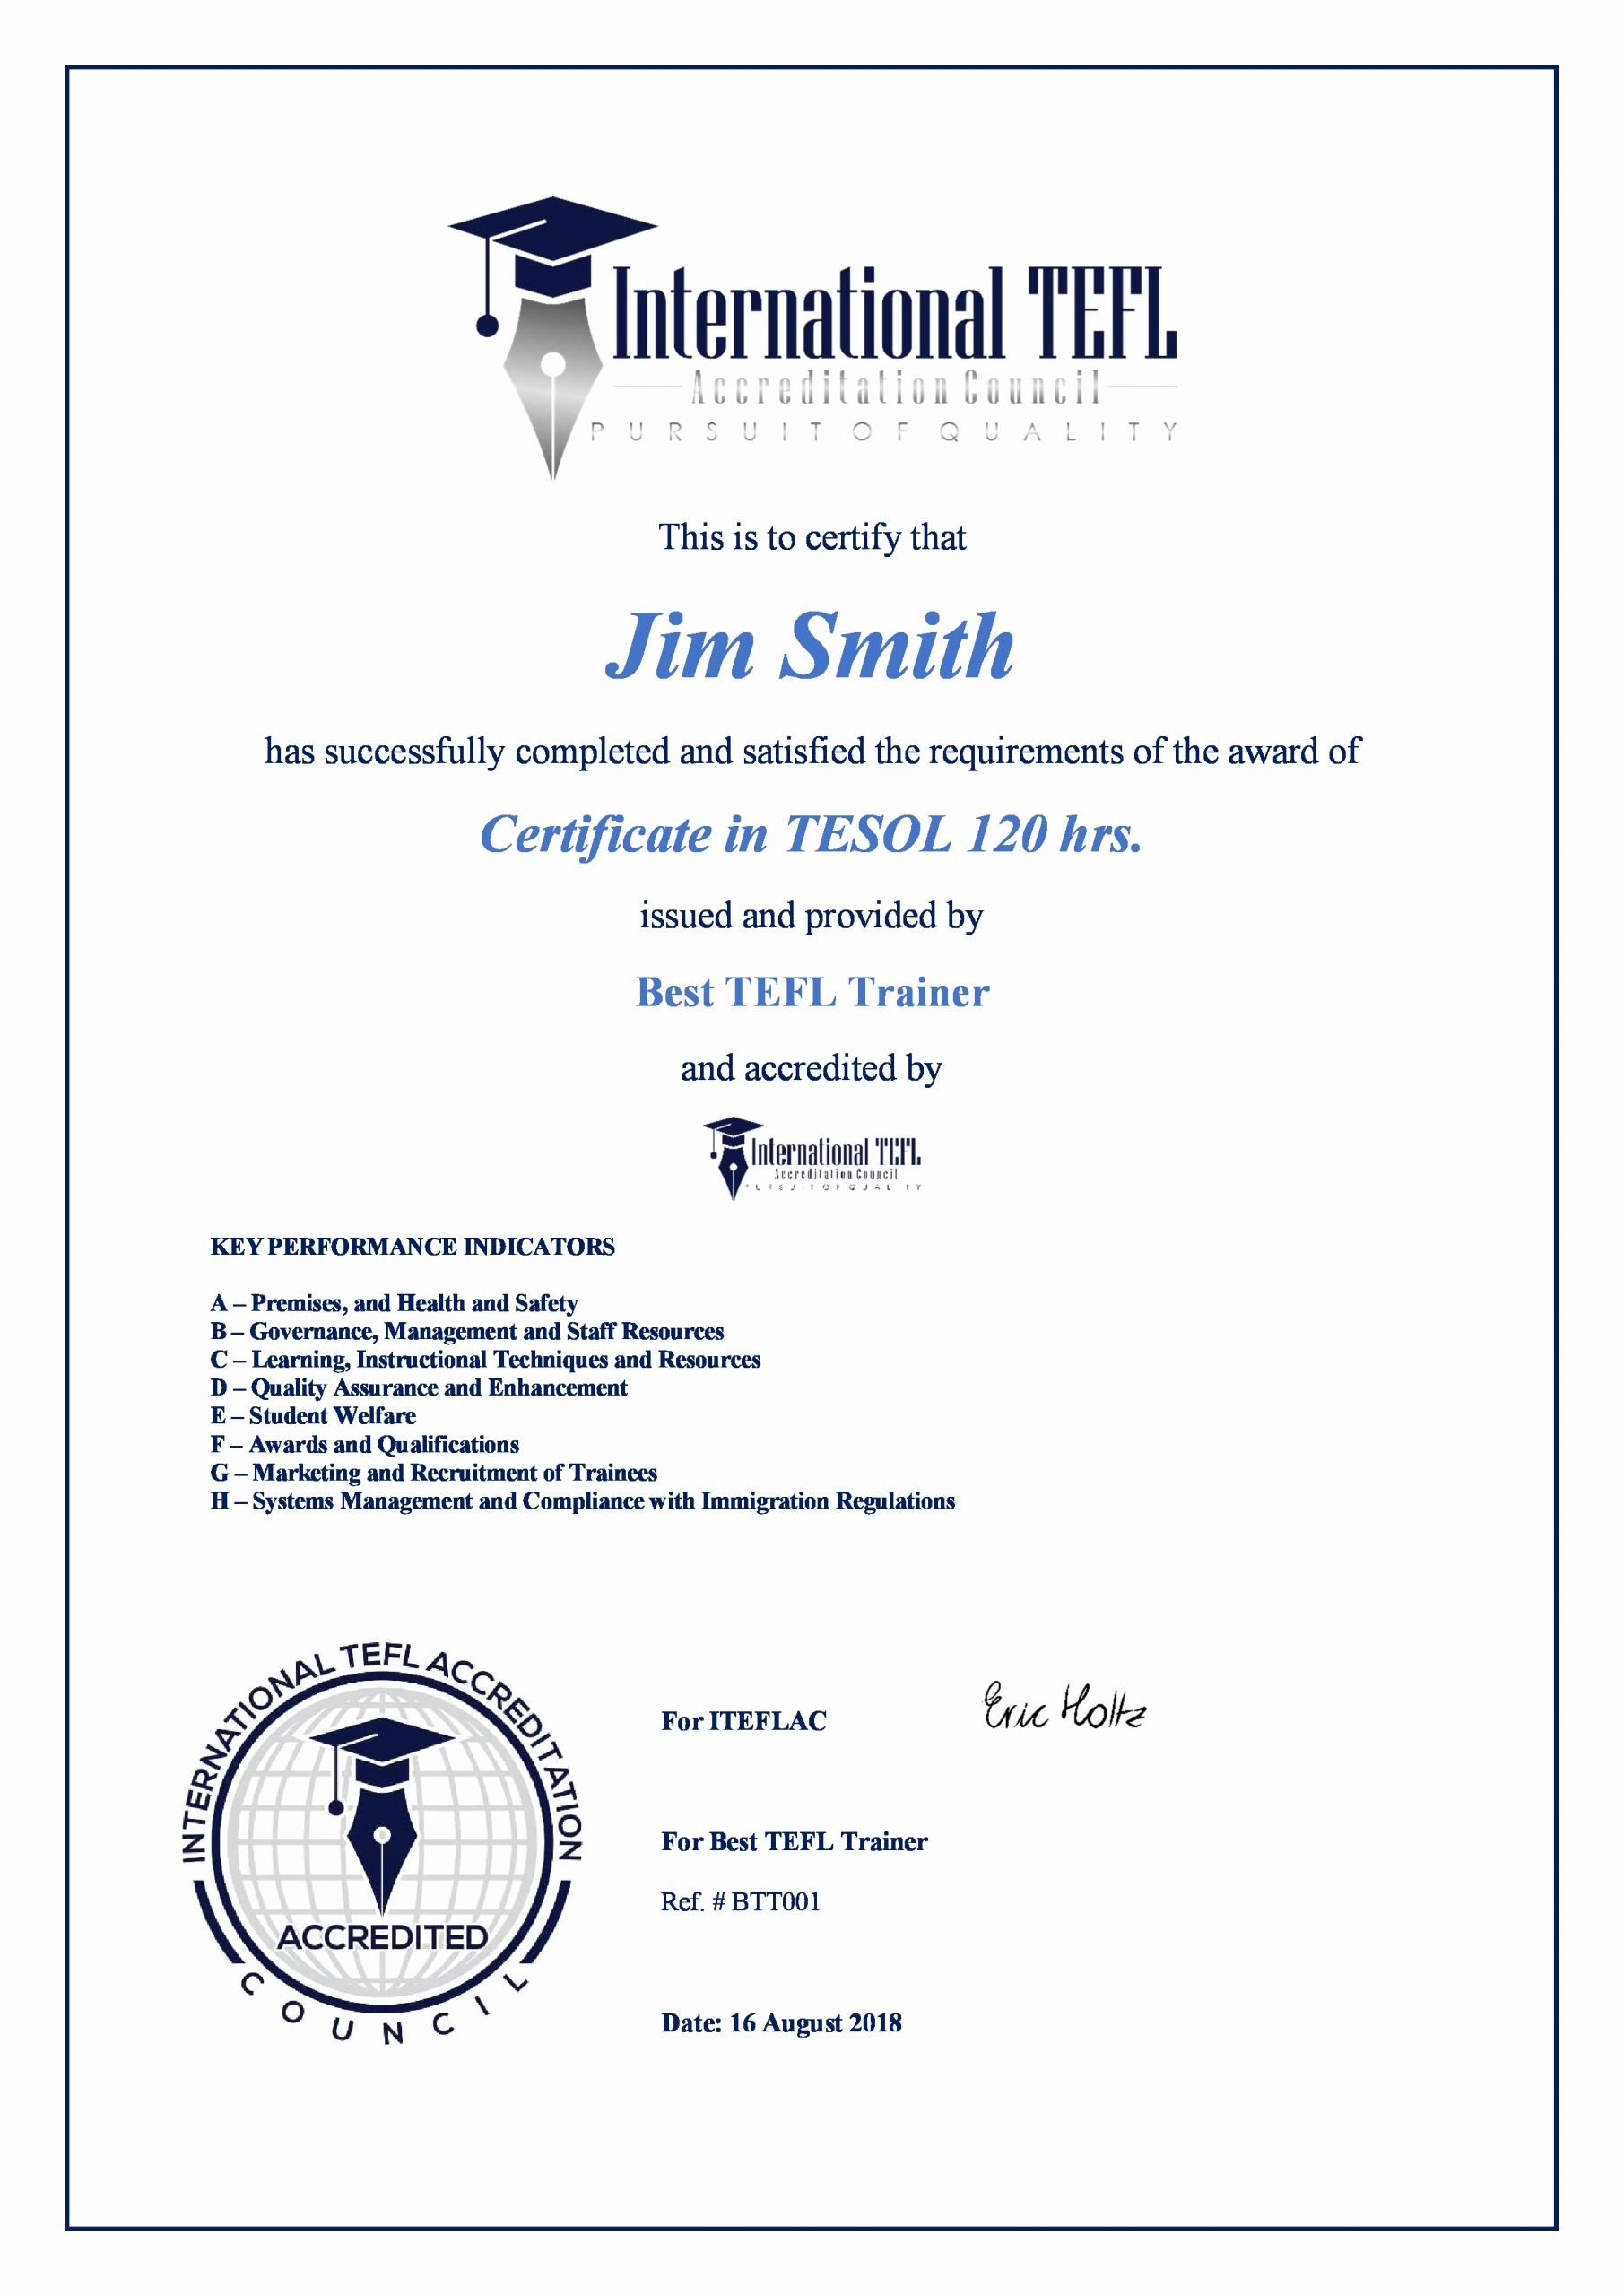 Student Council Certificates Template Awesome Iteflac Student Certificates Tefl Accreditation Iteflac